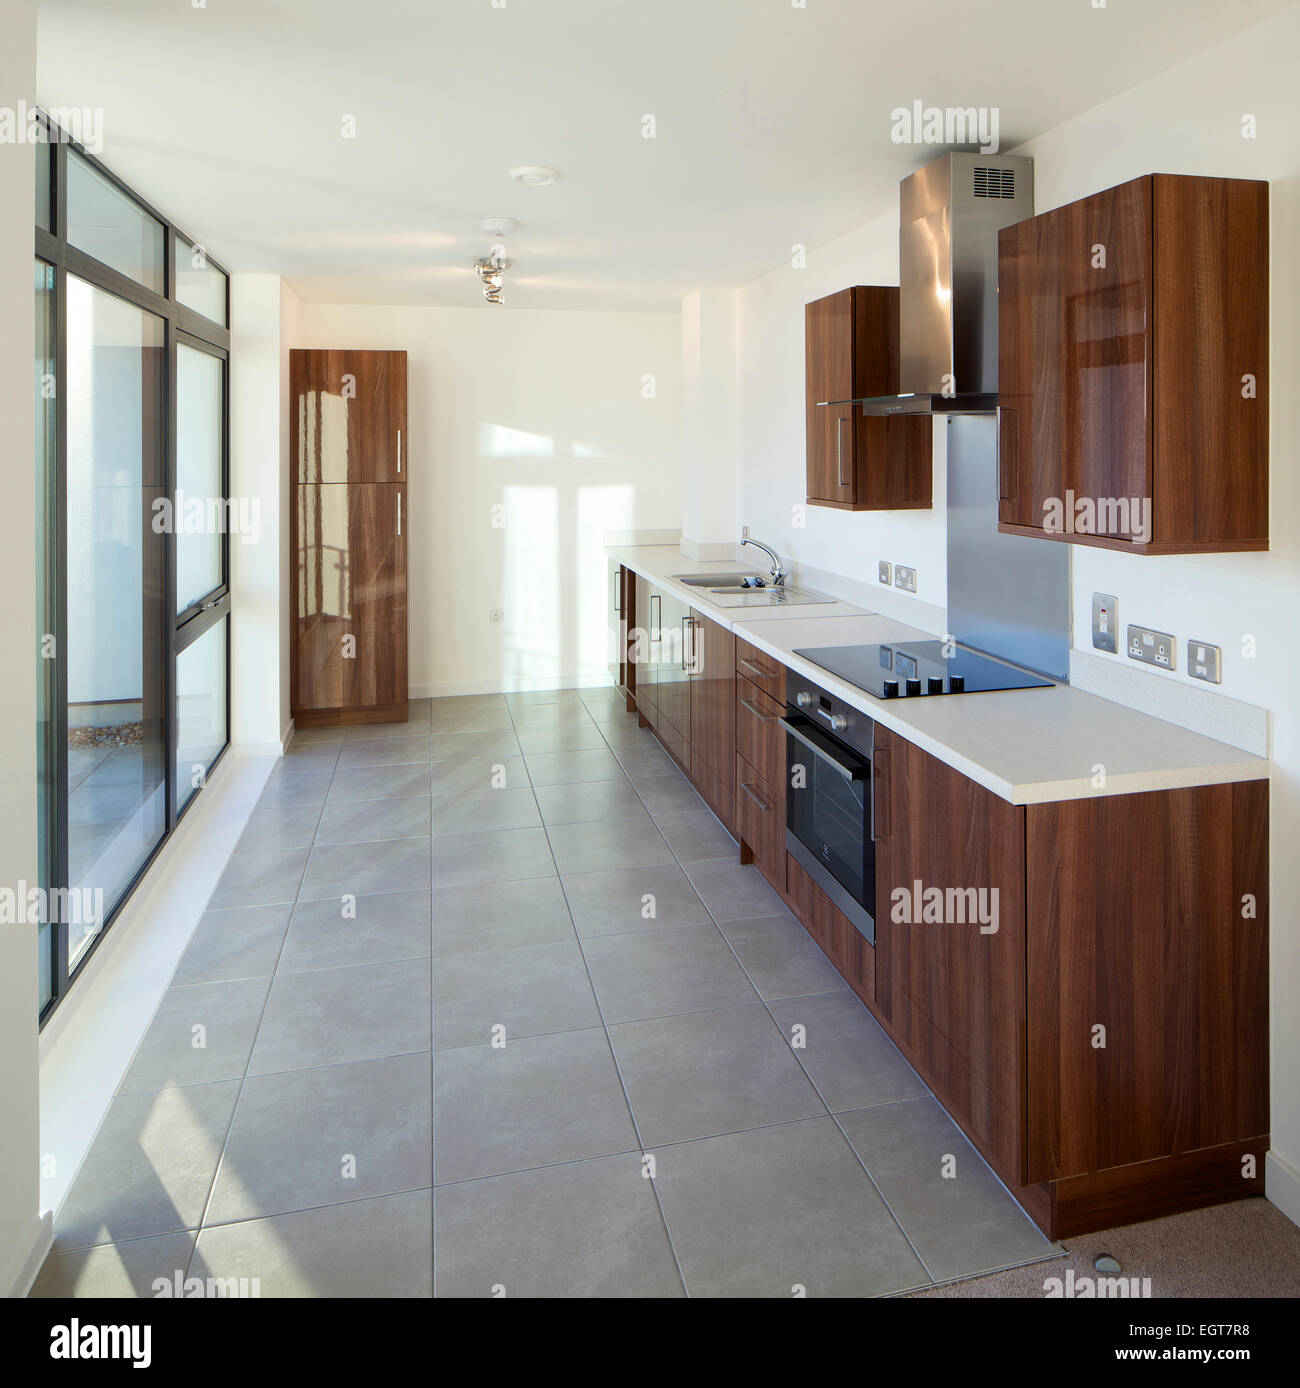 Interiors Houses Stock Photos & Interiors Houses Stock Images - Alamy